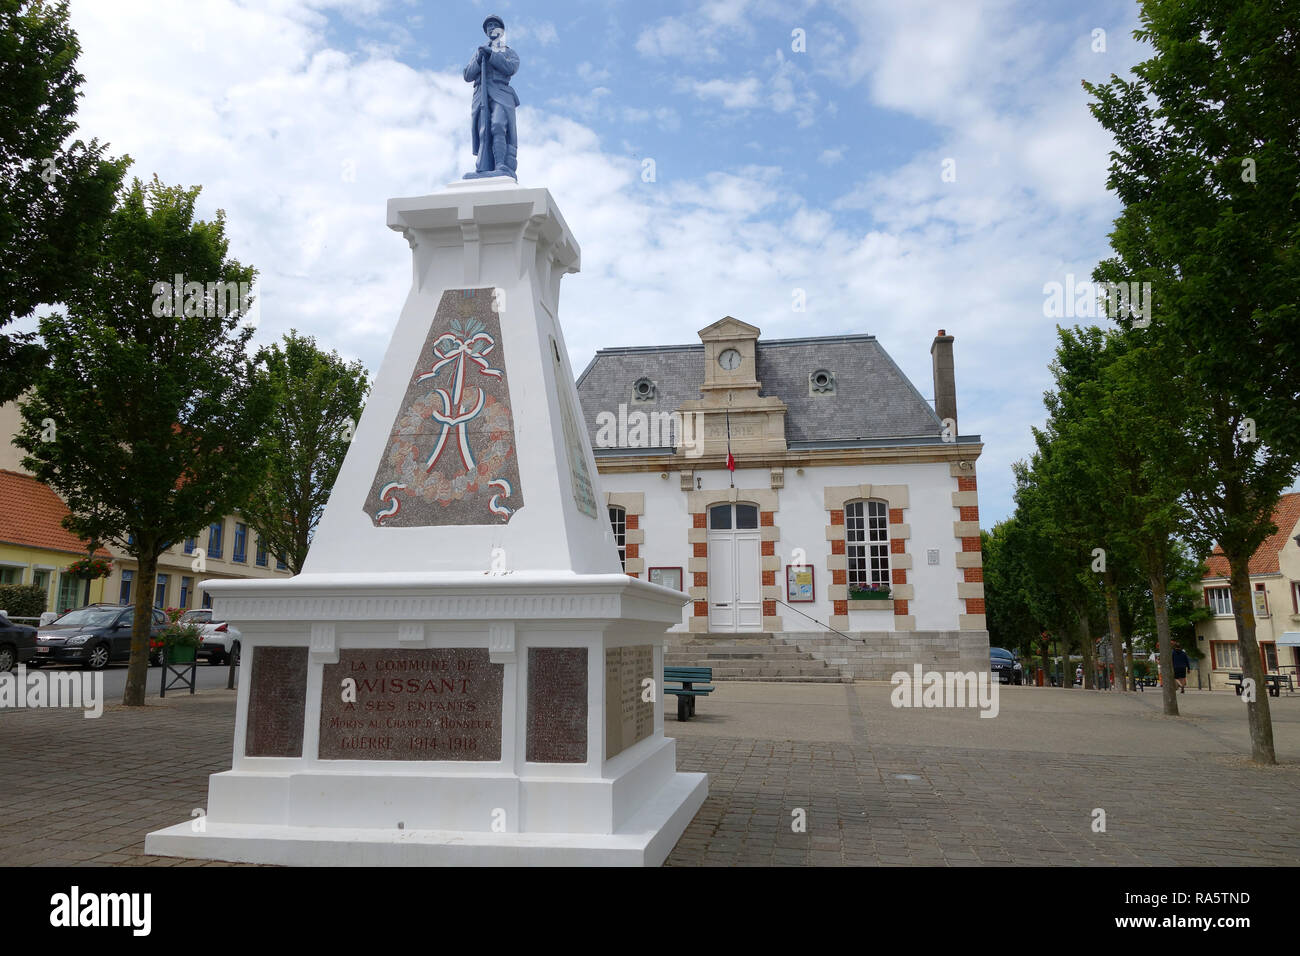 Wissant northern France war memorial - Stock Image